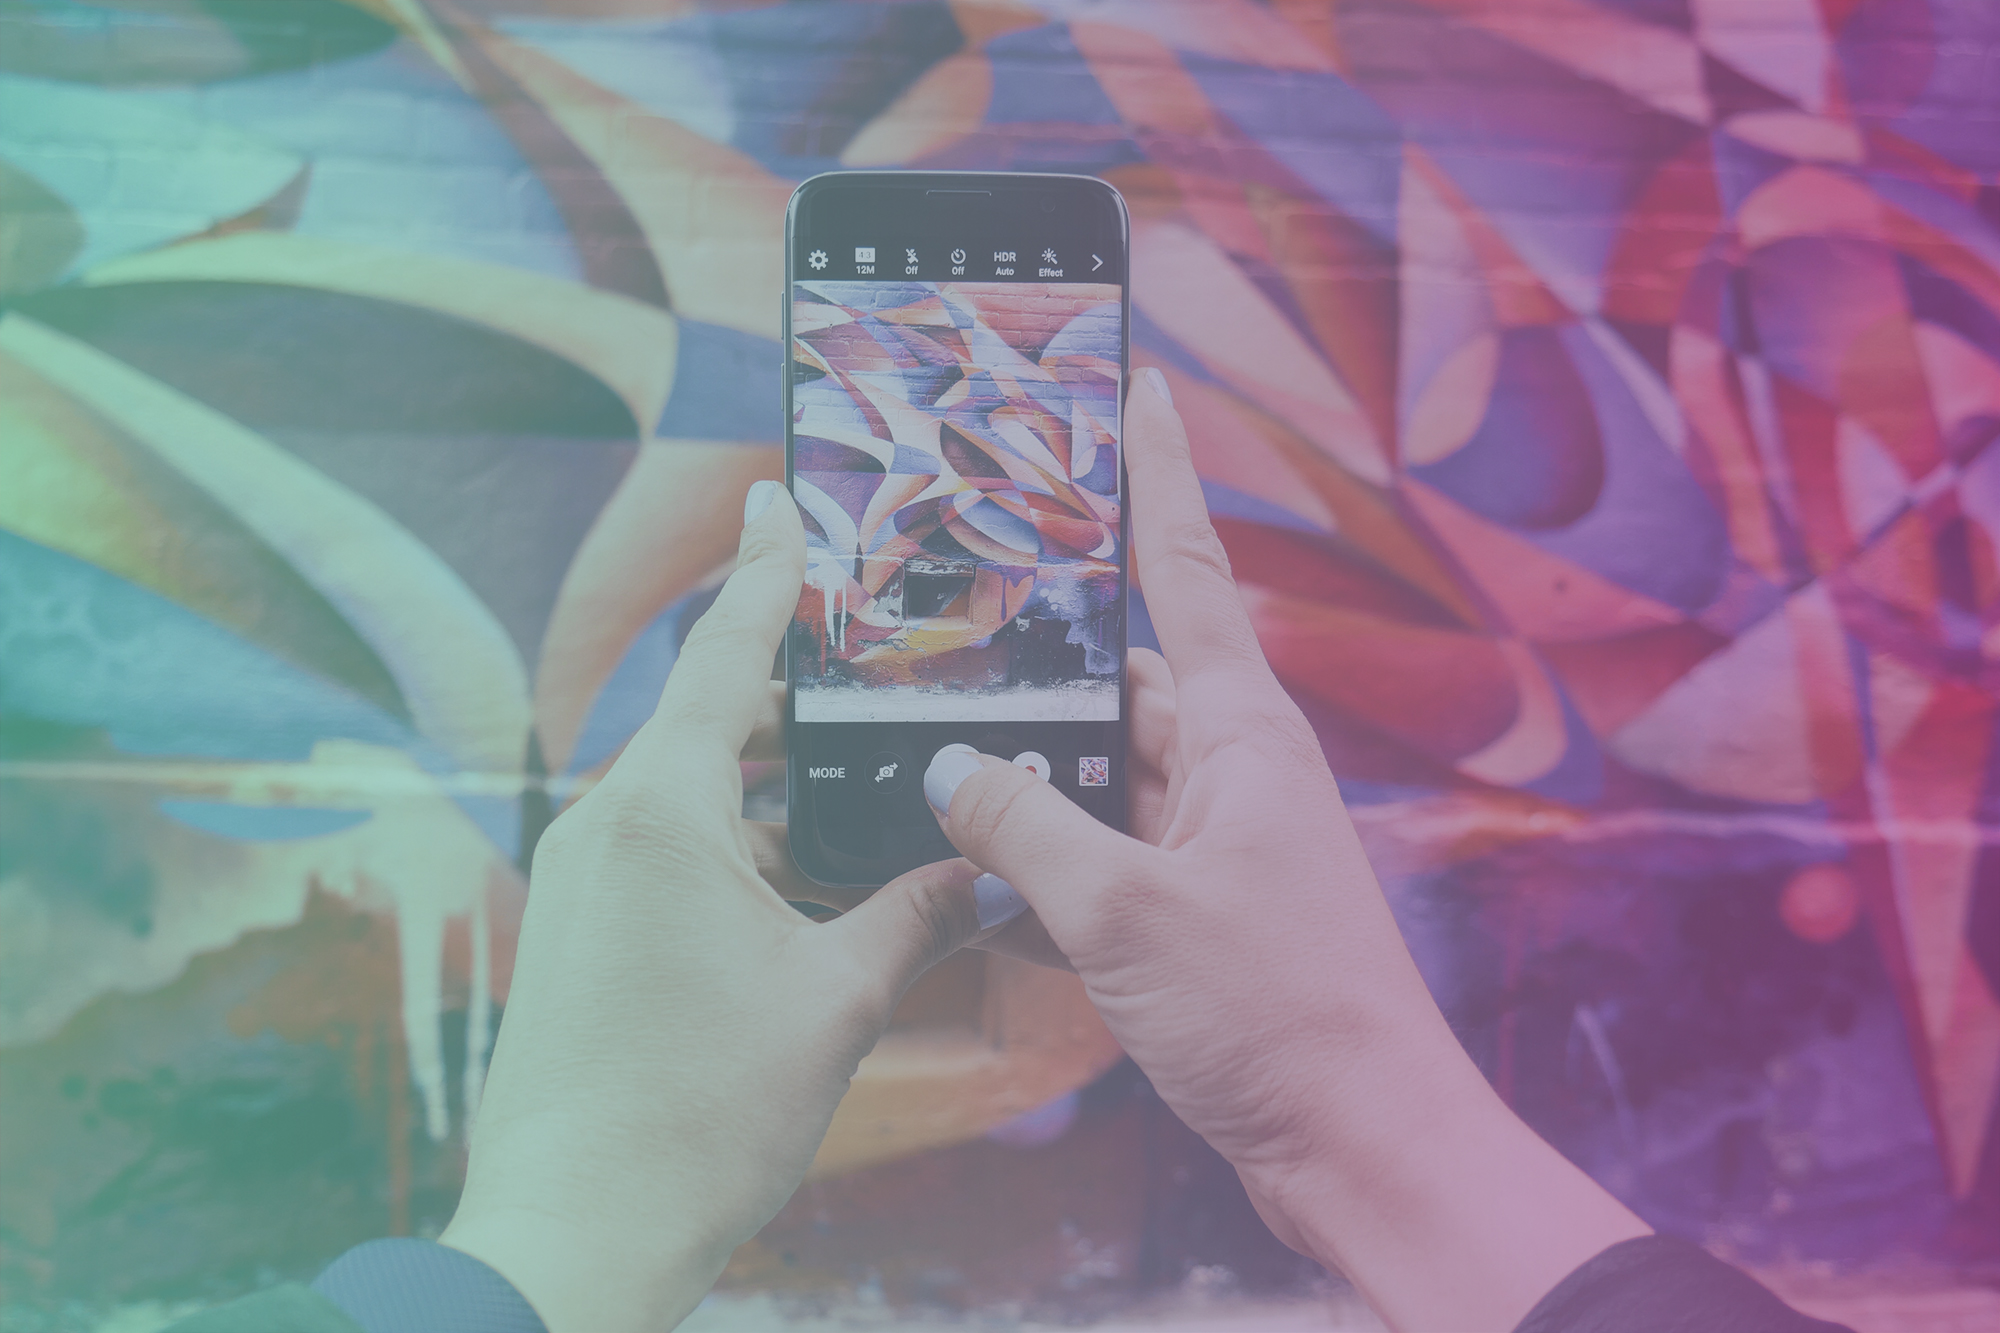 Instagram Features You May Not Know About